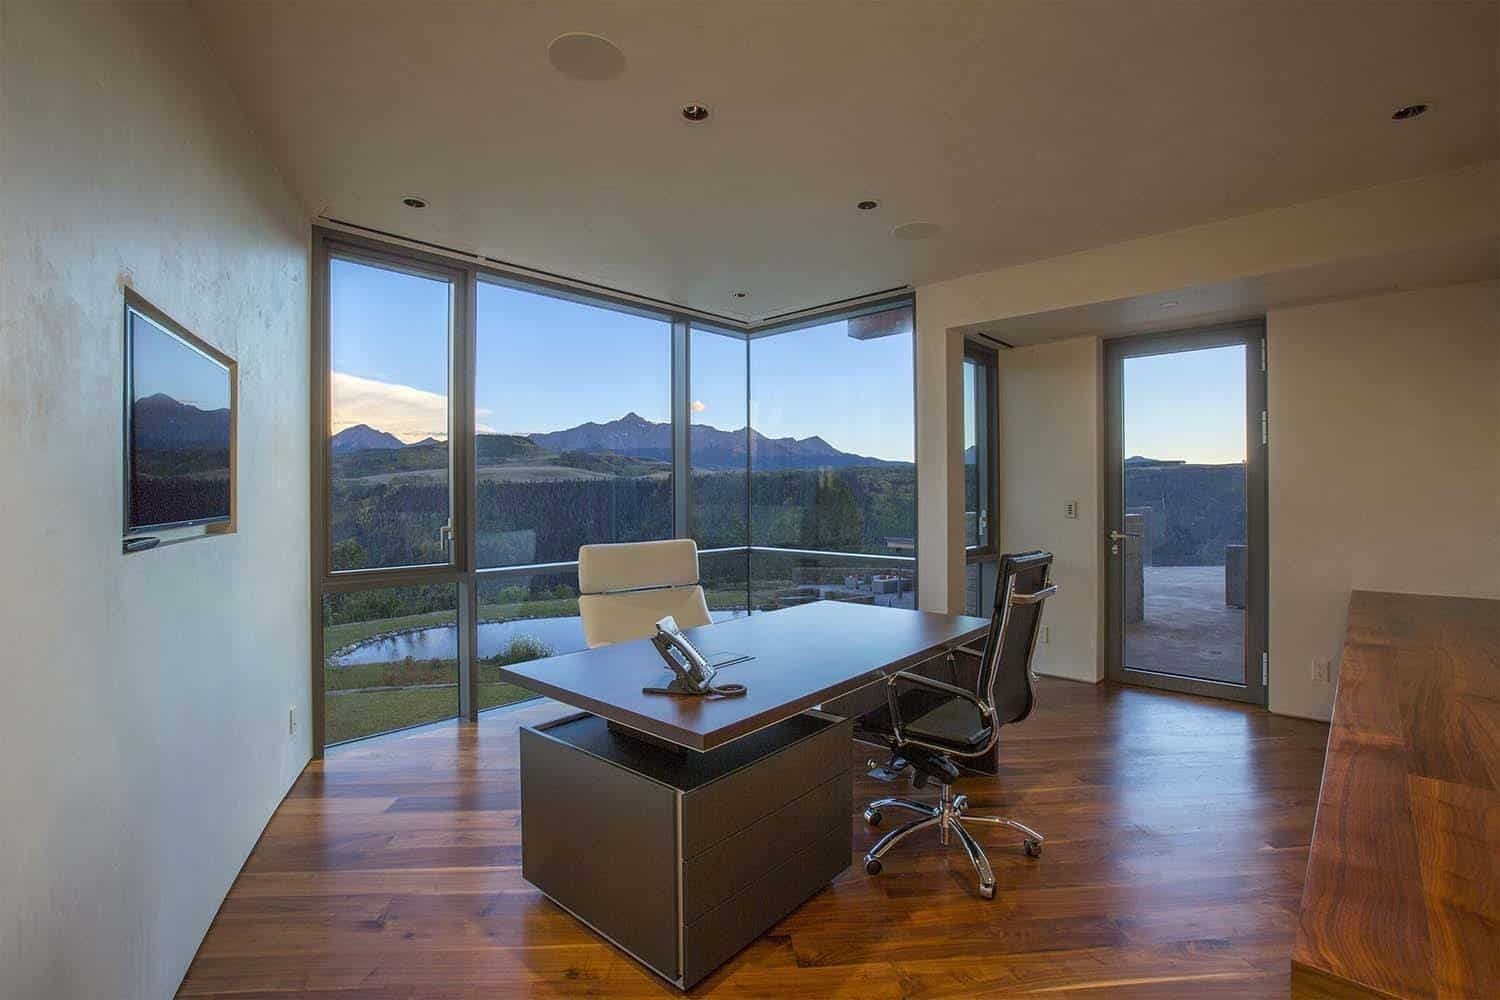 Modern-Residence-Colorado-Poss Architecture-36-1 Kindesign